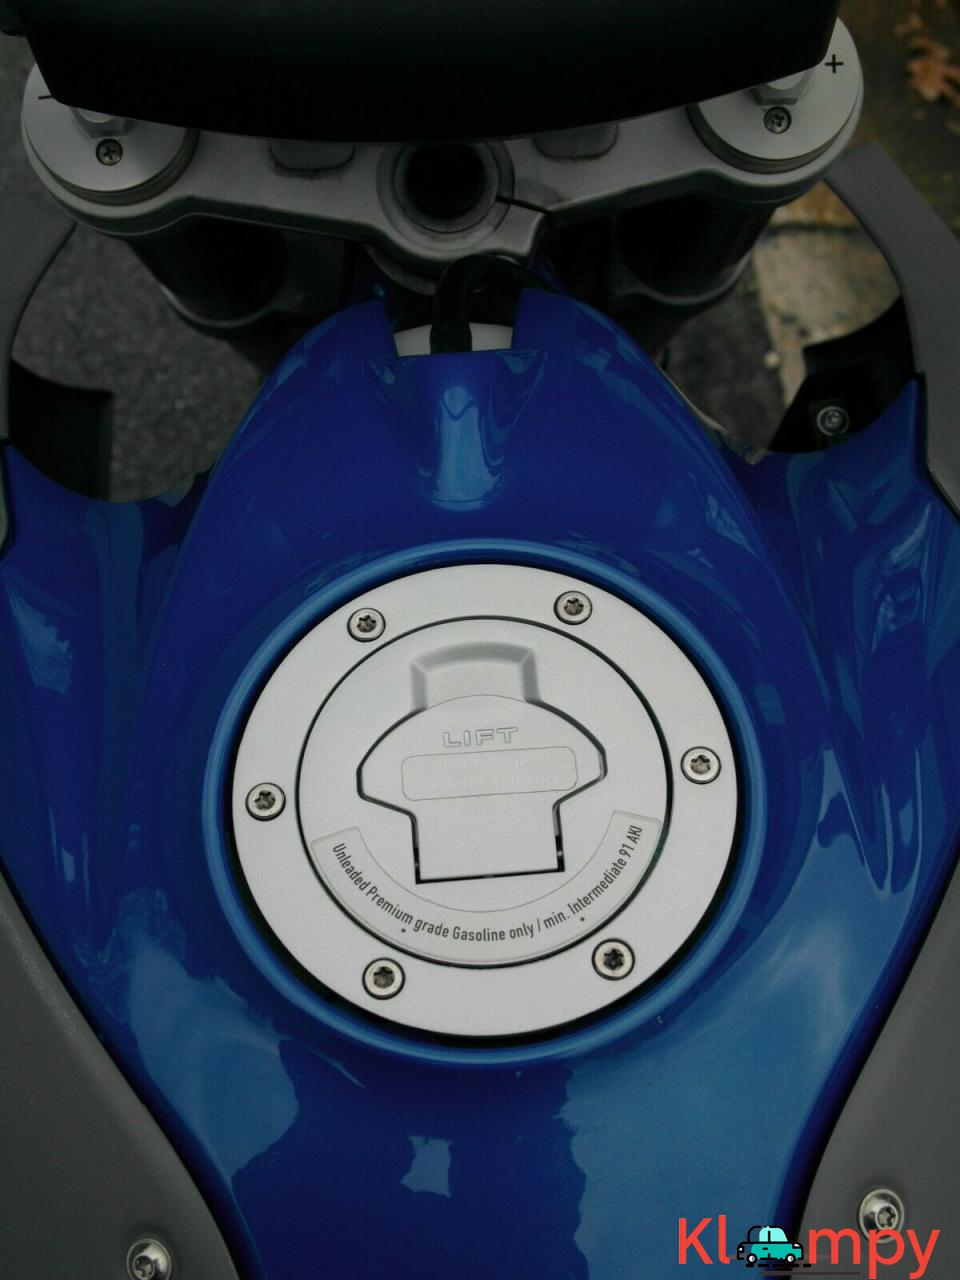 2006 BMW Enduro Blue - 11/18